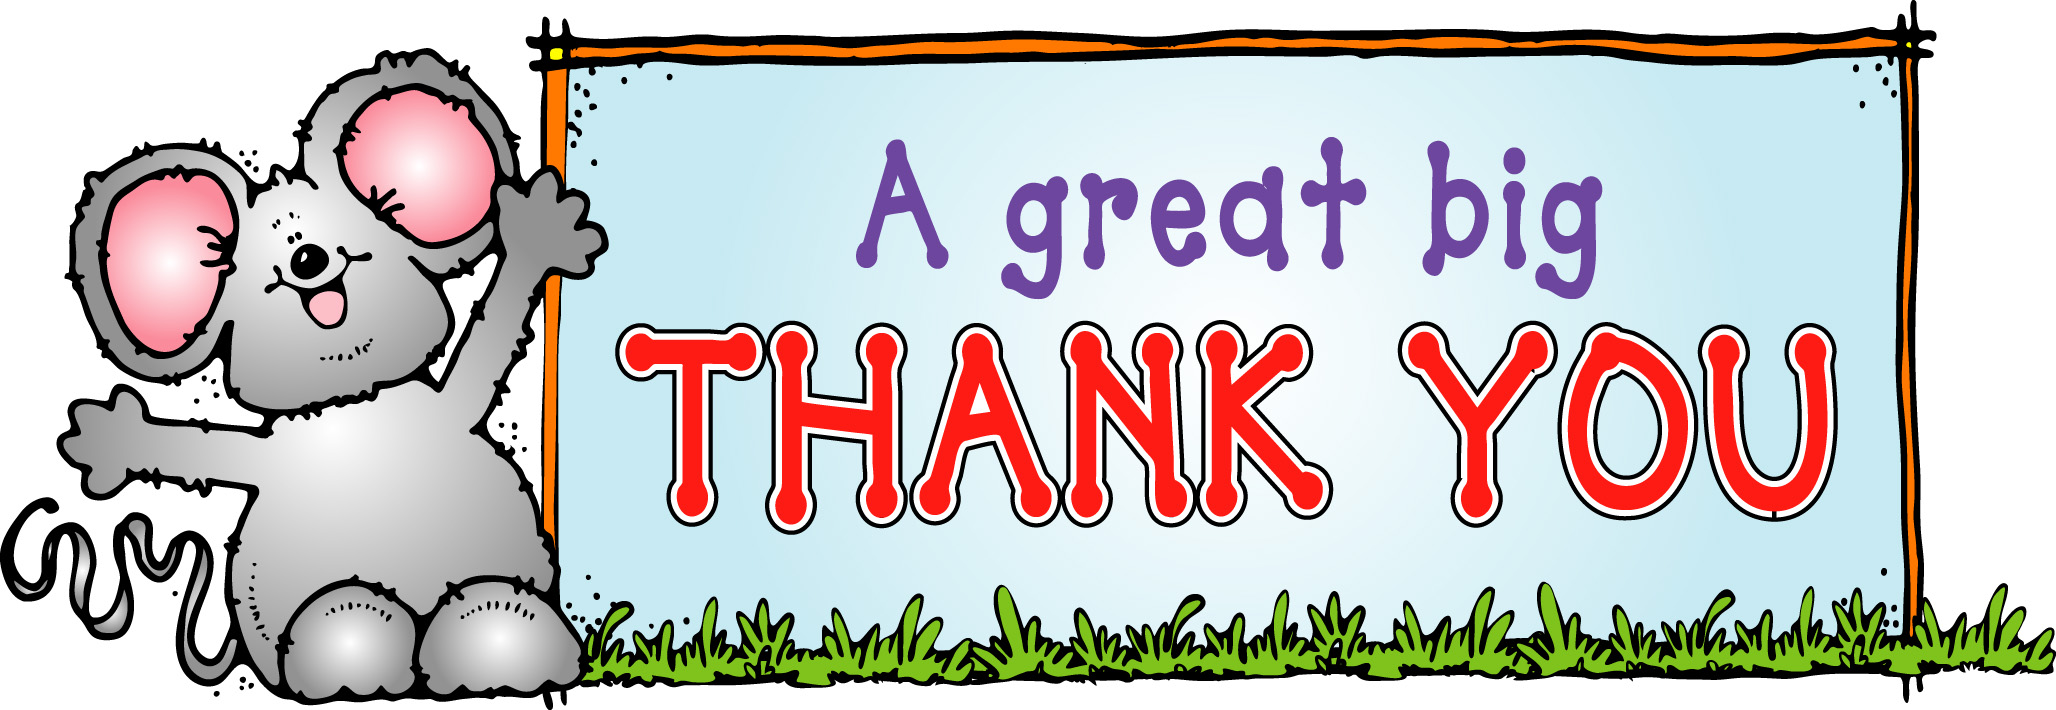 Thank You For Your Help Clip  - Clipart For Thank You